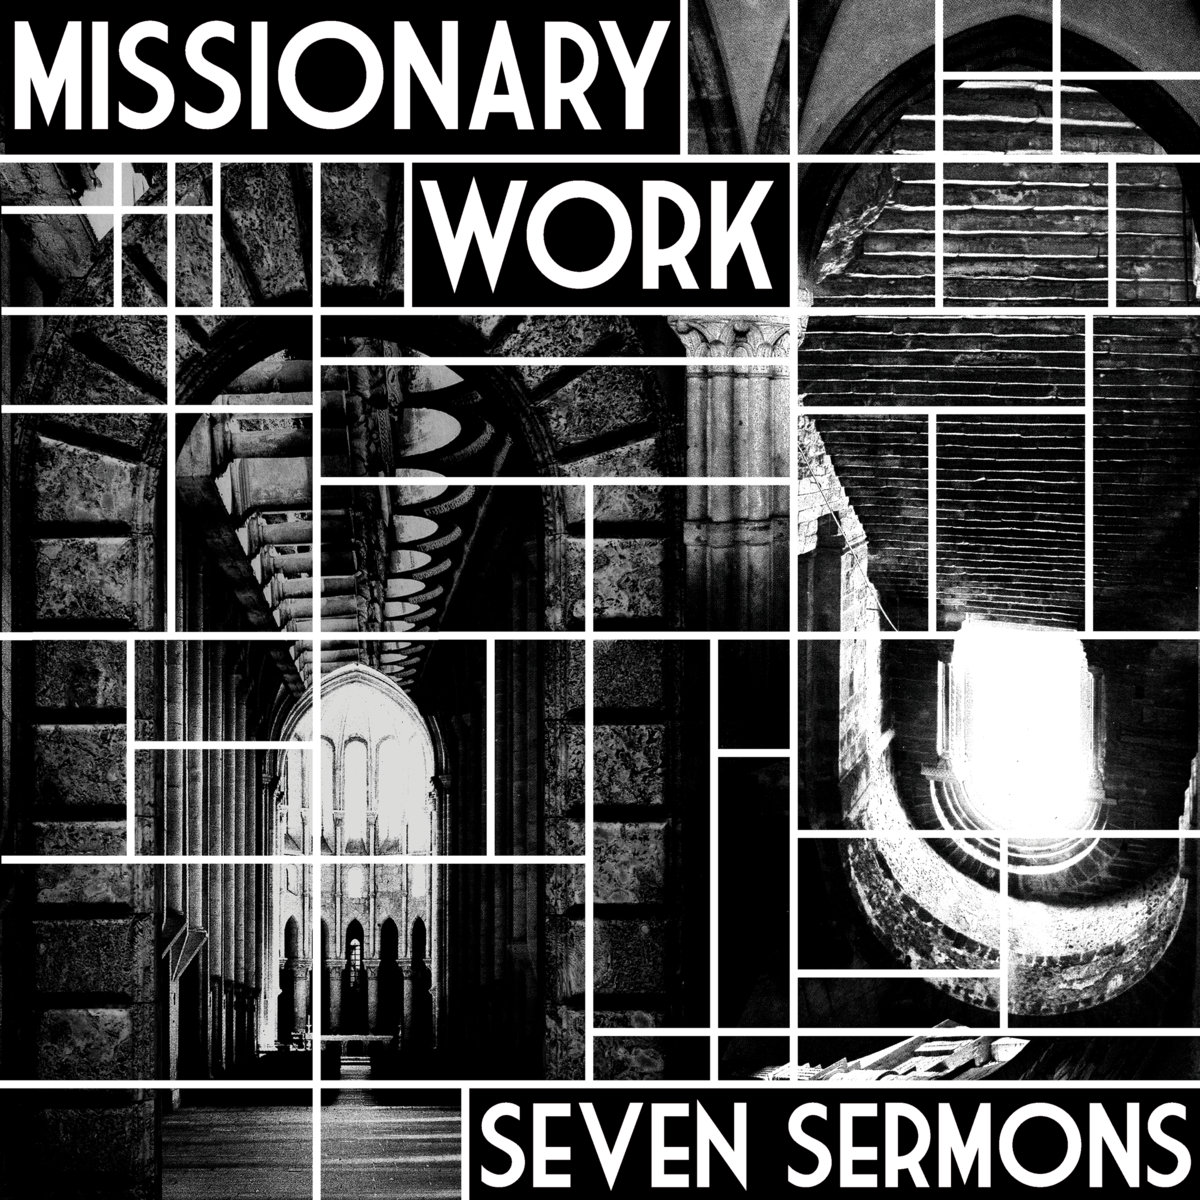 Missionary Work: Seven Sermons (Album Review)